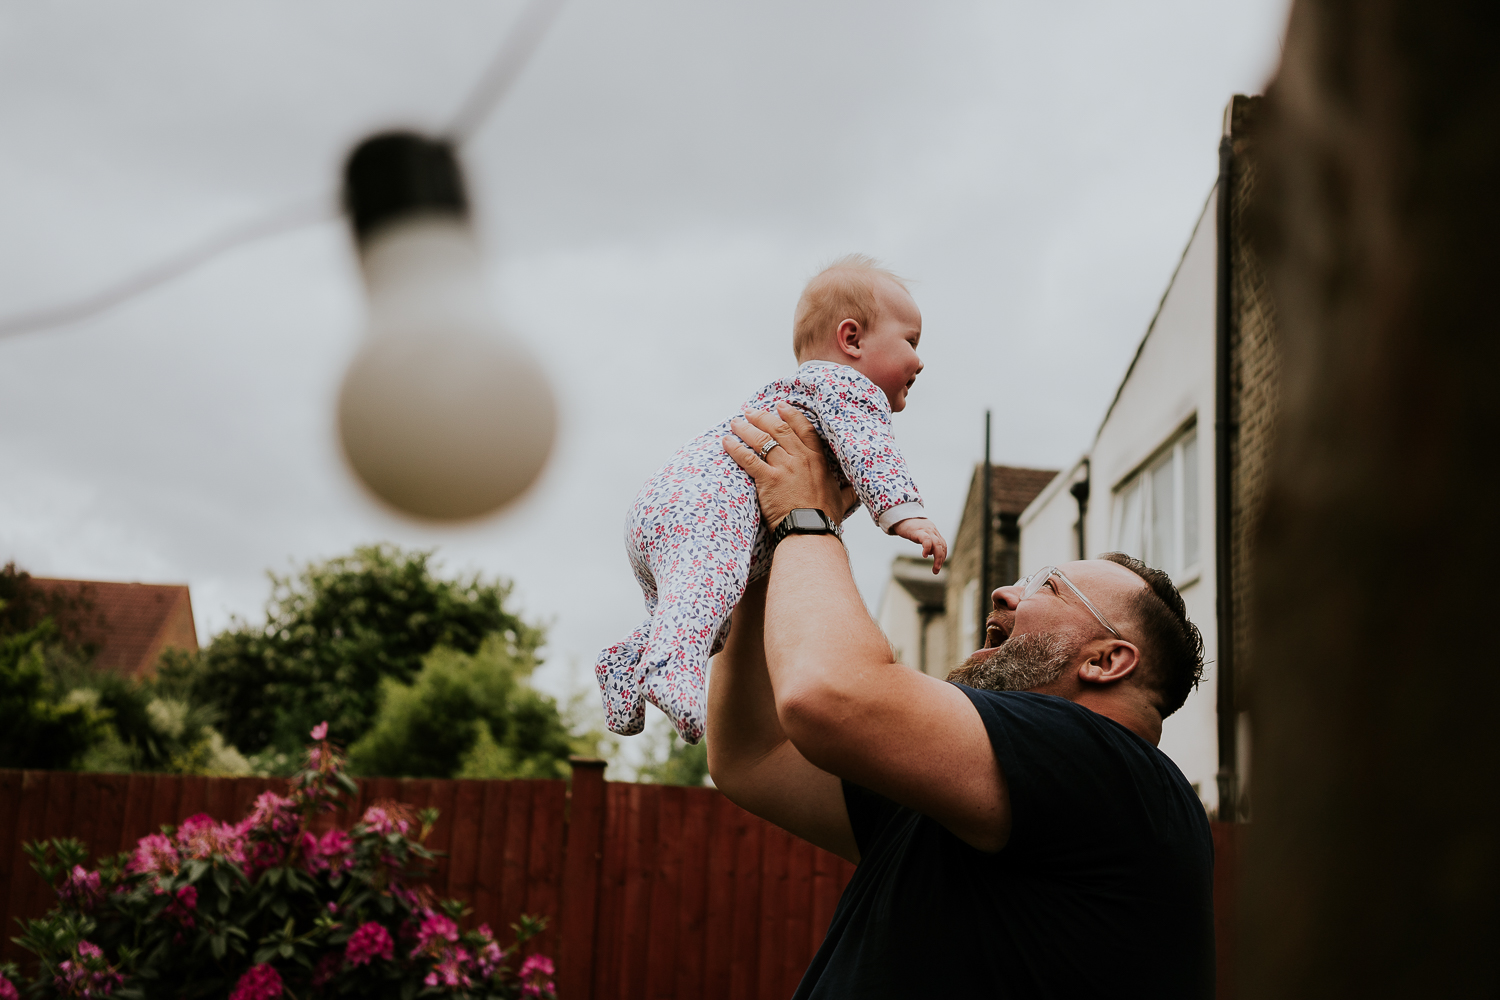 day in the life photo shoot father holding baby daughter in the air grey clouds behind